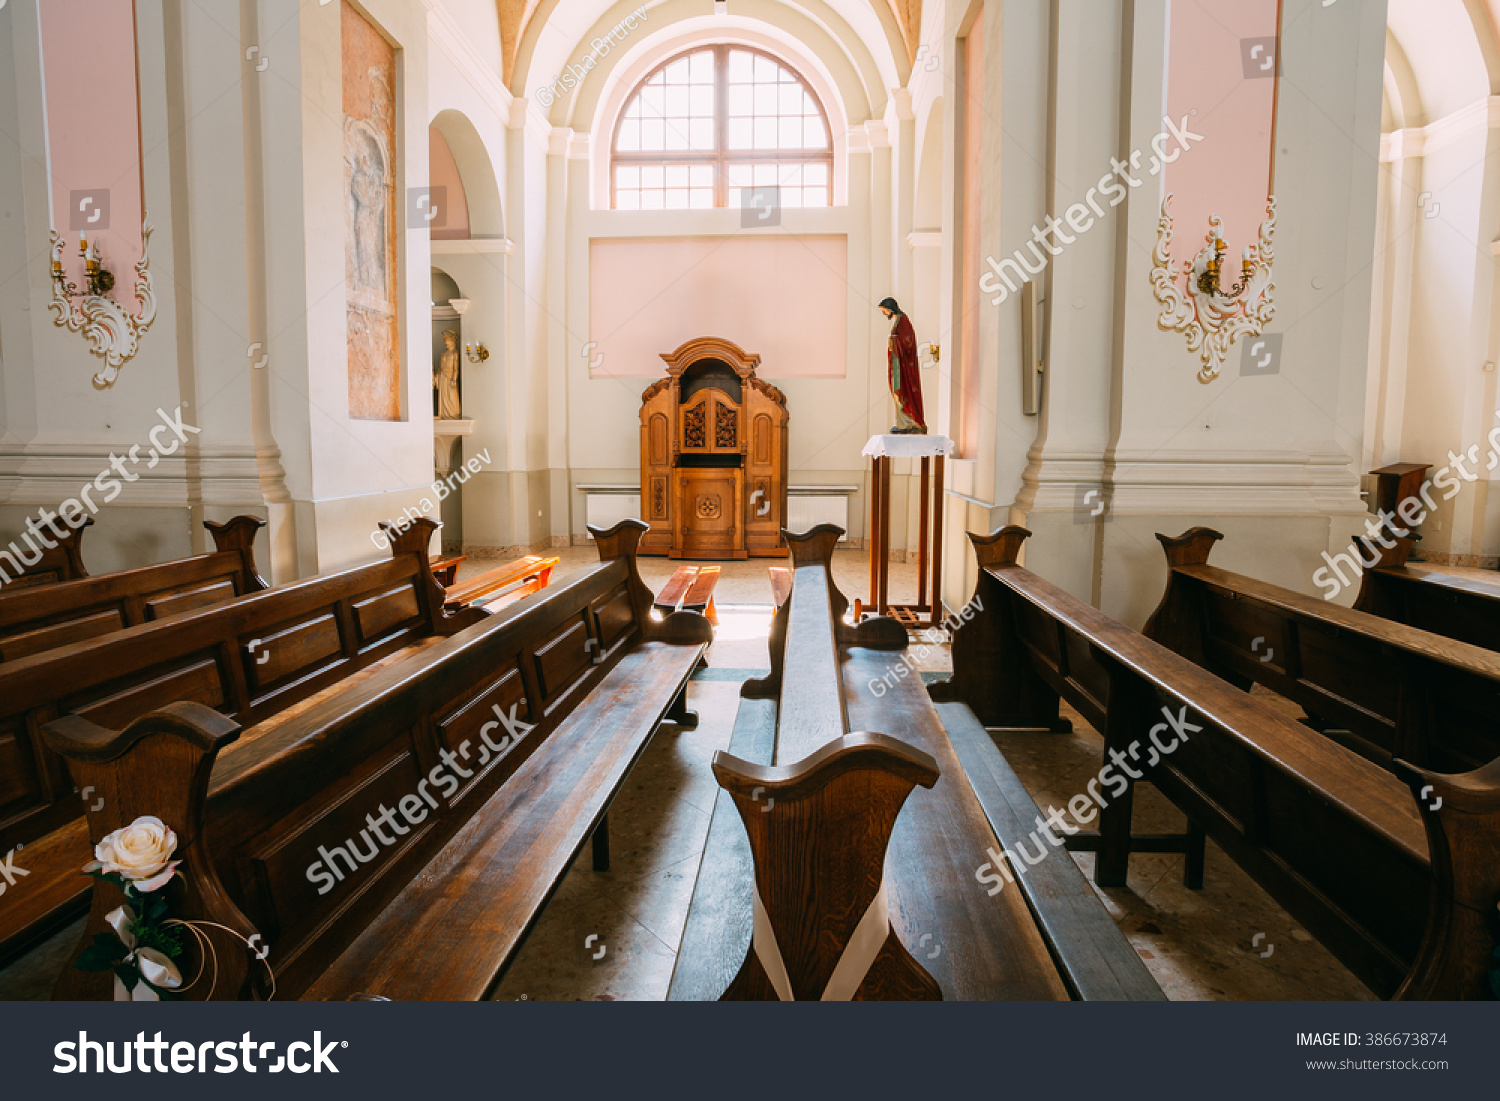 Minsk Belarus May 20 2015 Empty benches in Cathedral of Saint Virgin Mary in Minsk Belarus